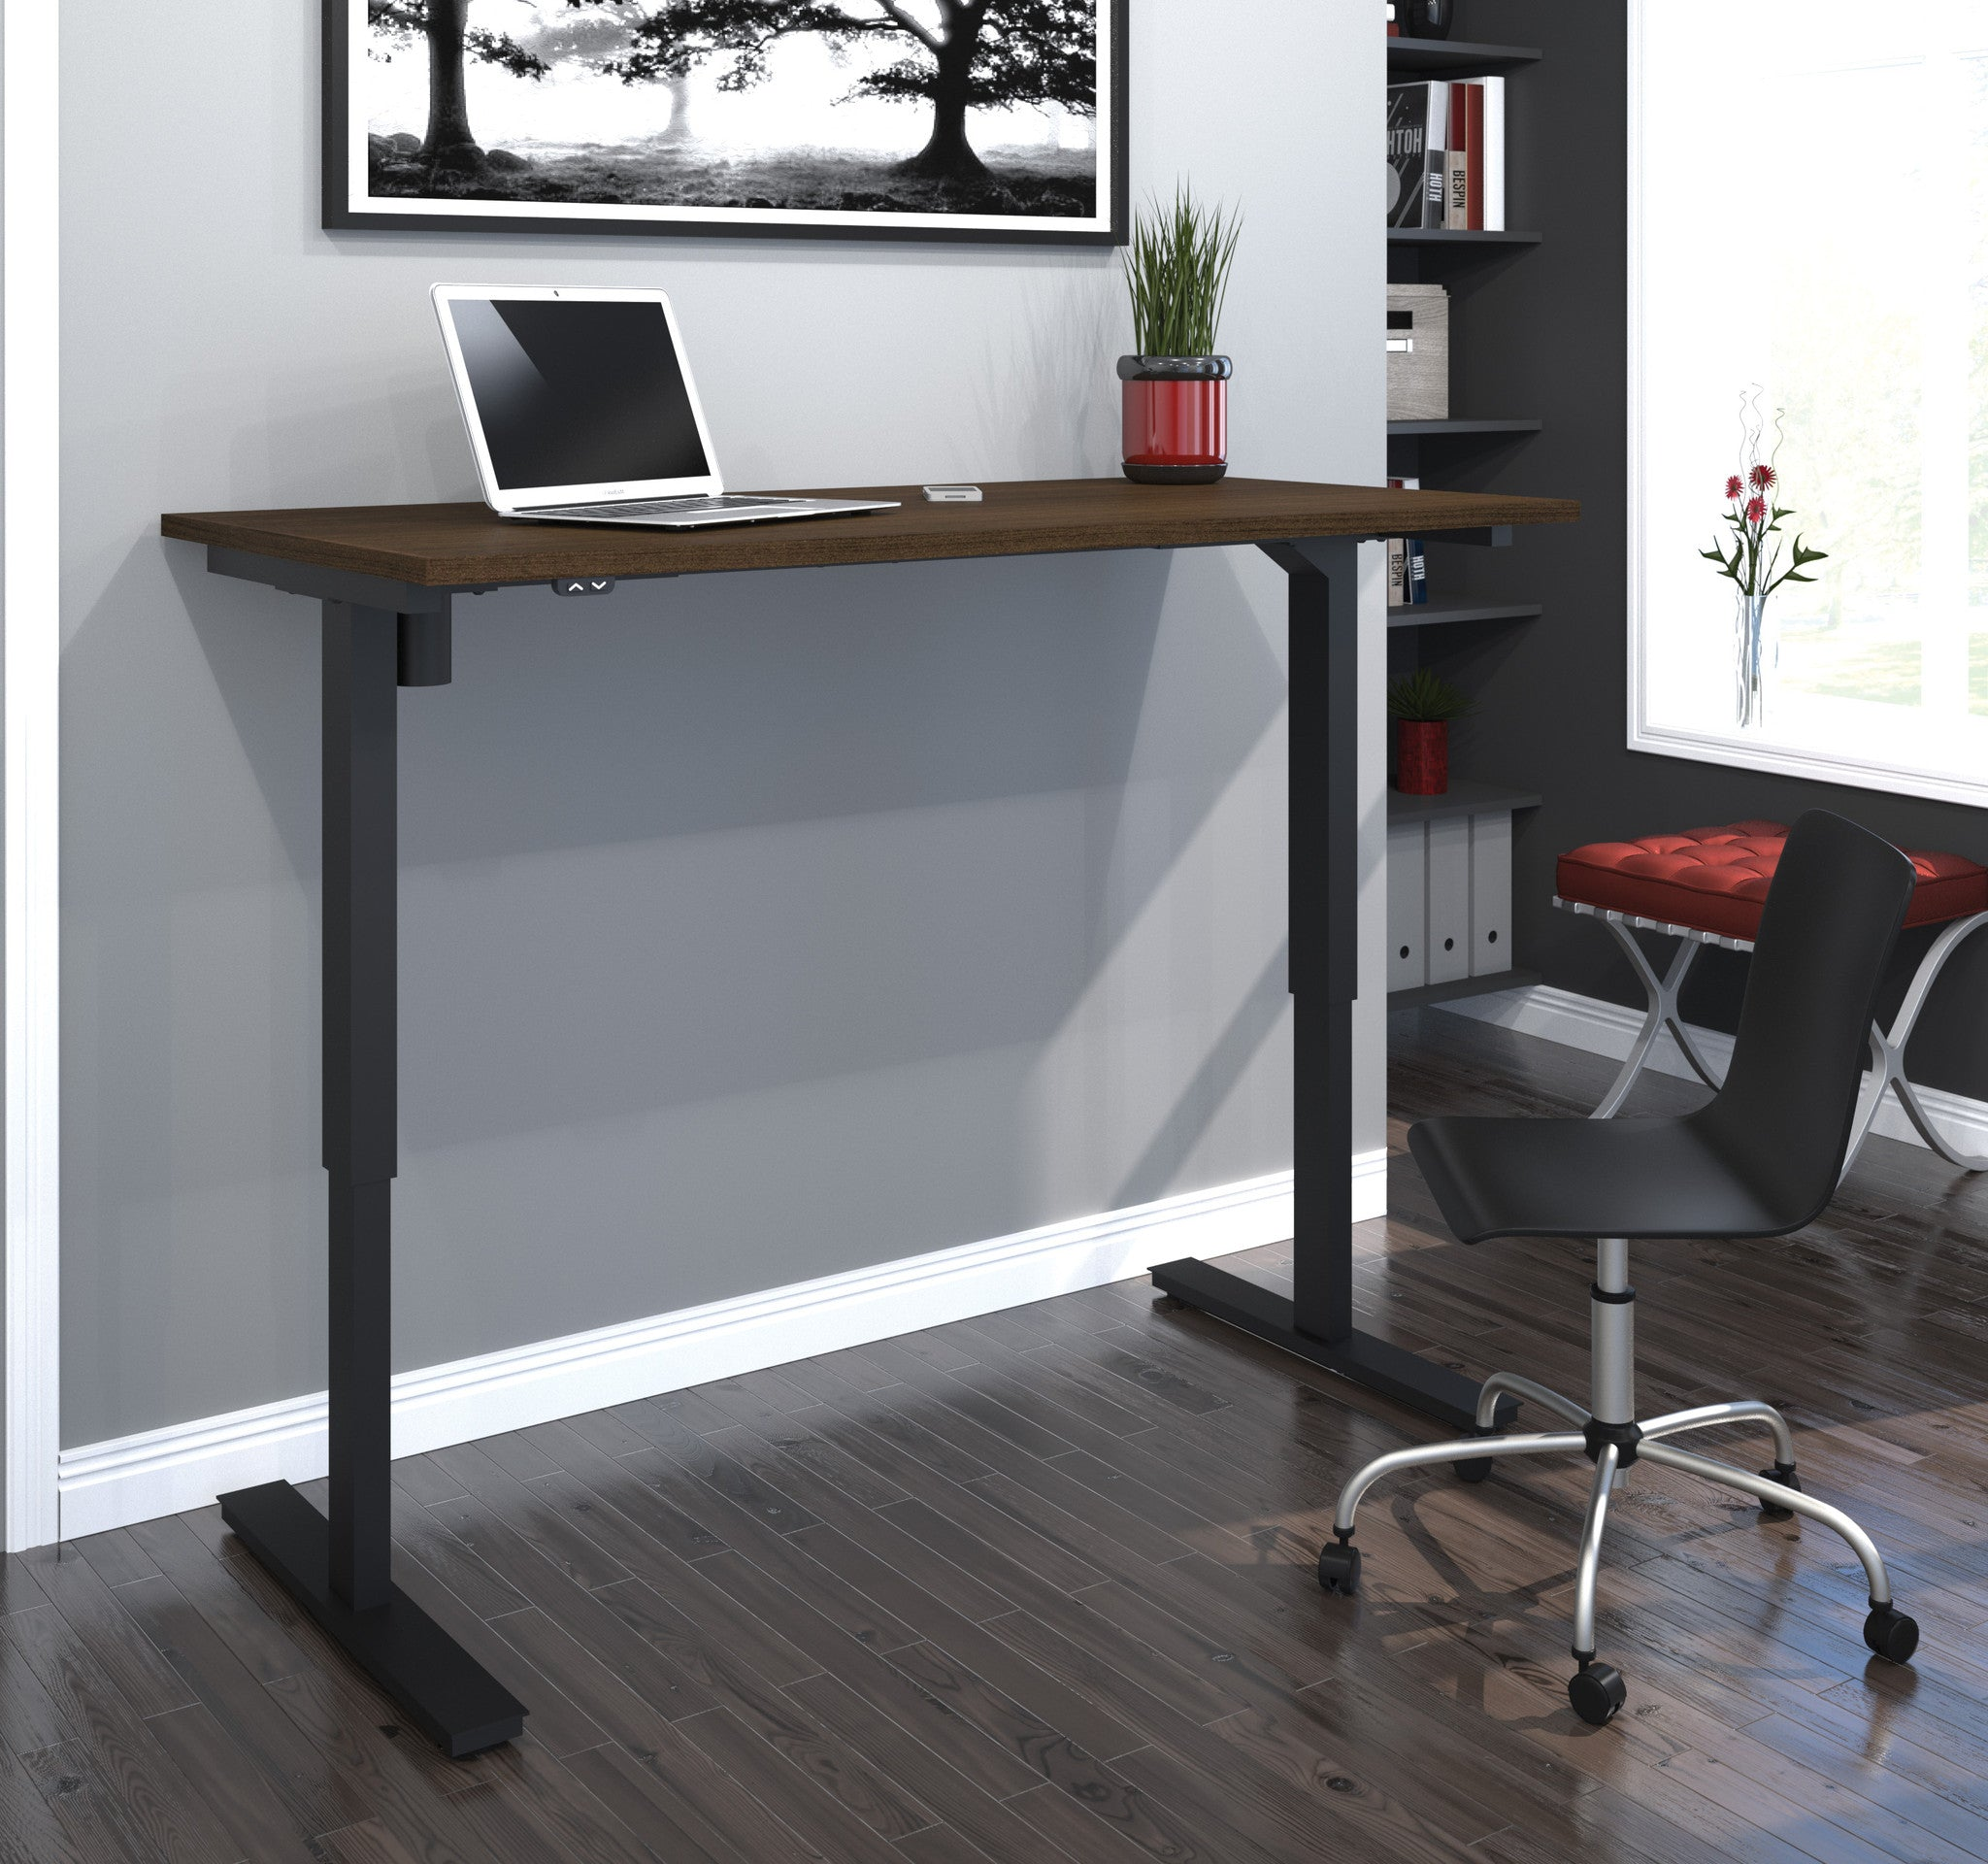 Where to buy a computer desk 27